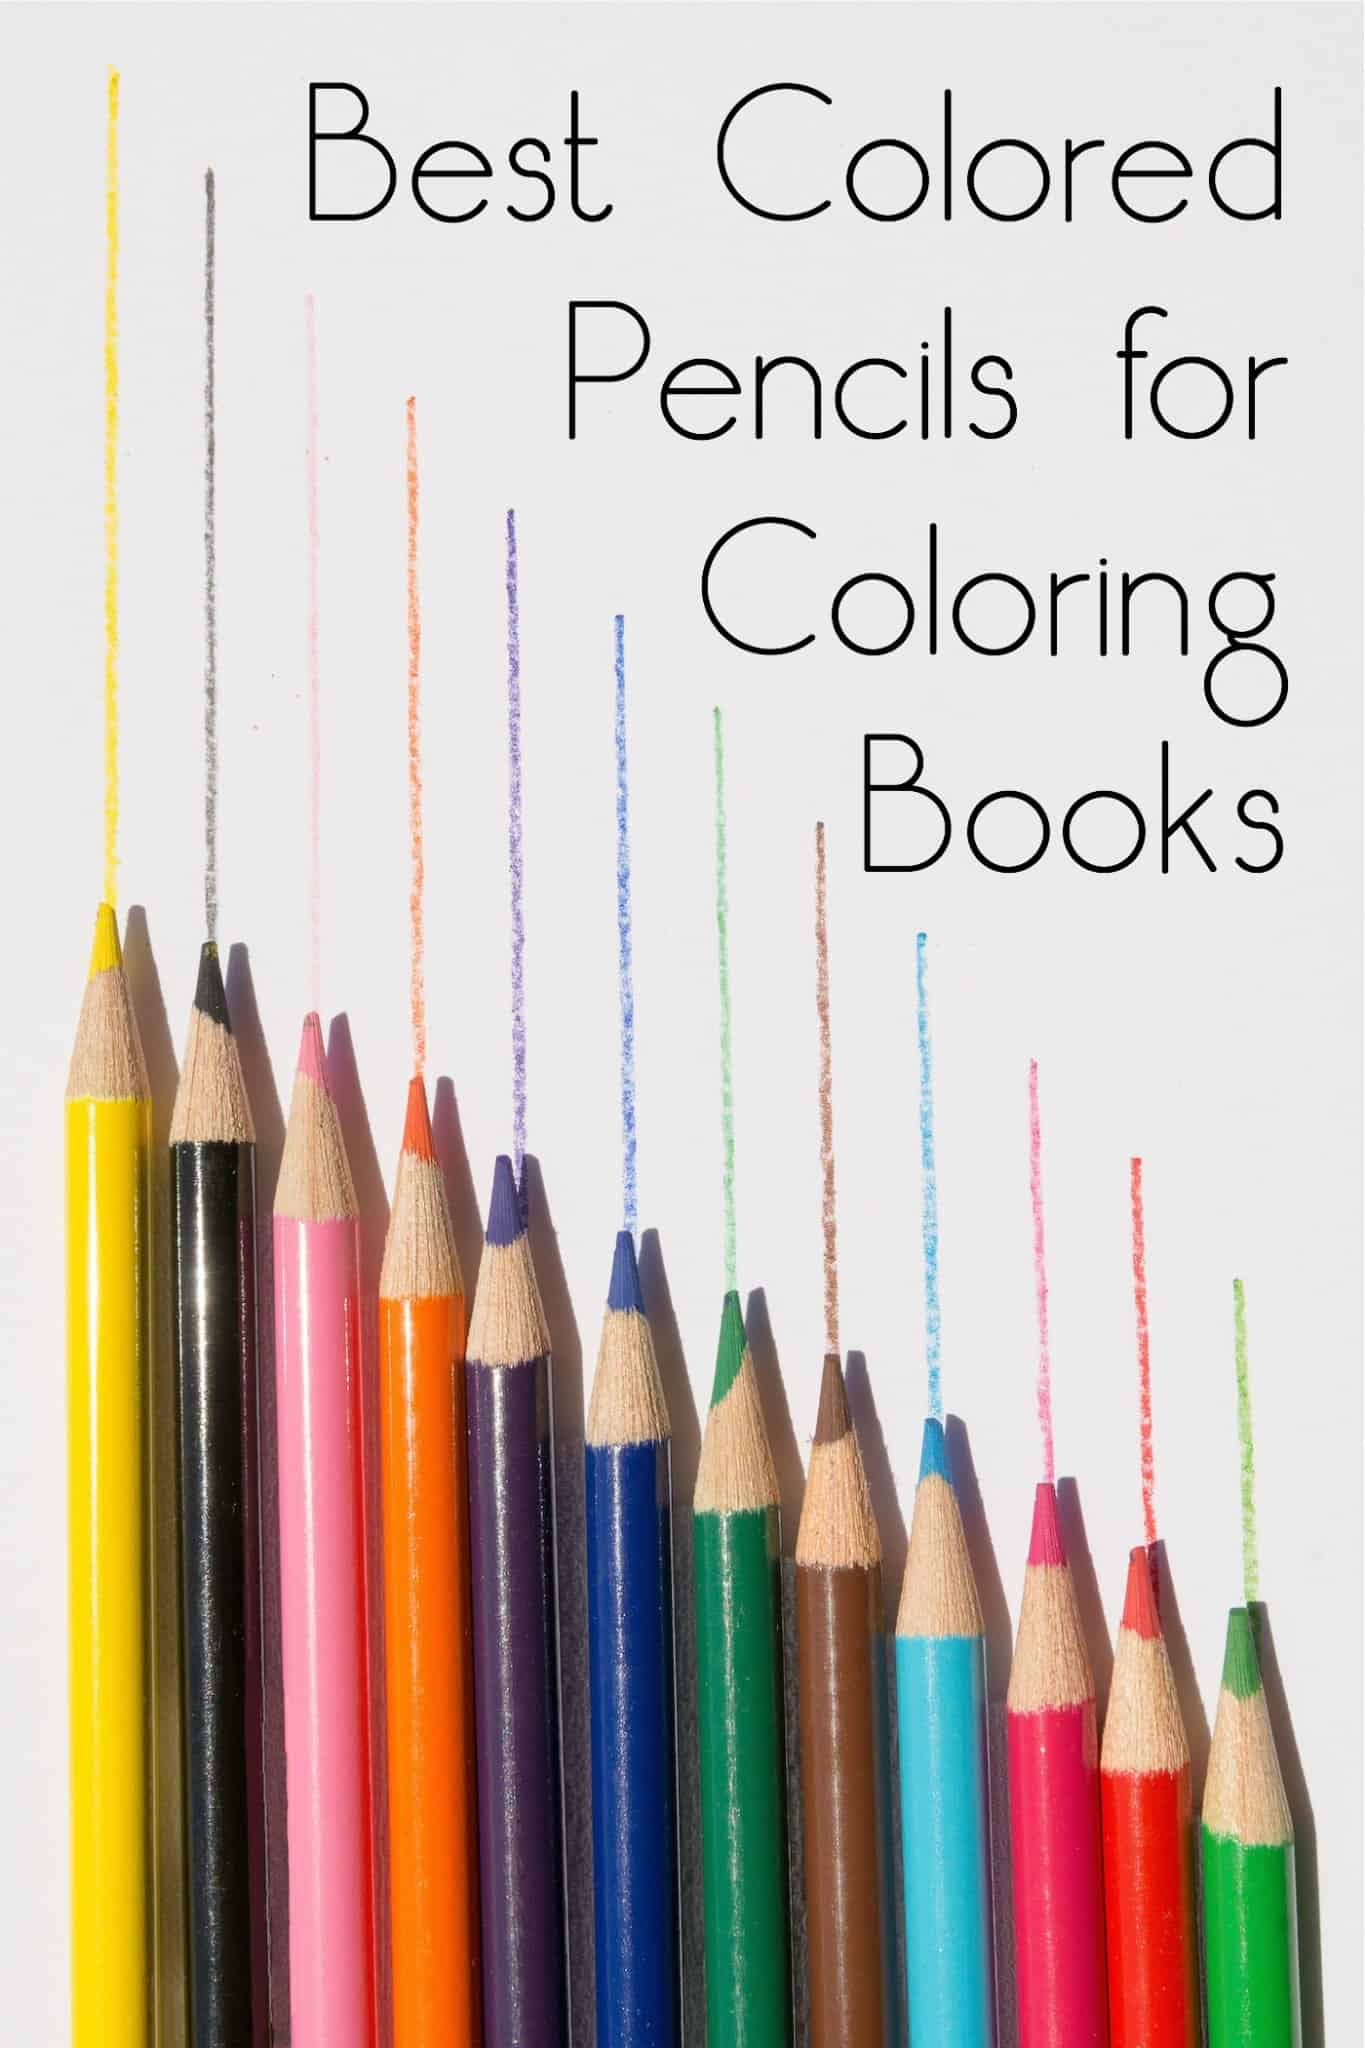 How to say colouring book in japanese - Are You Looking For The Best Colored Pencils For Coloring Books This Is My Top